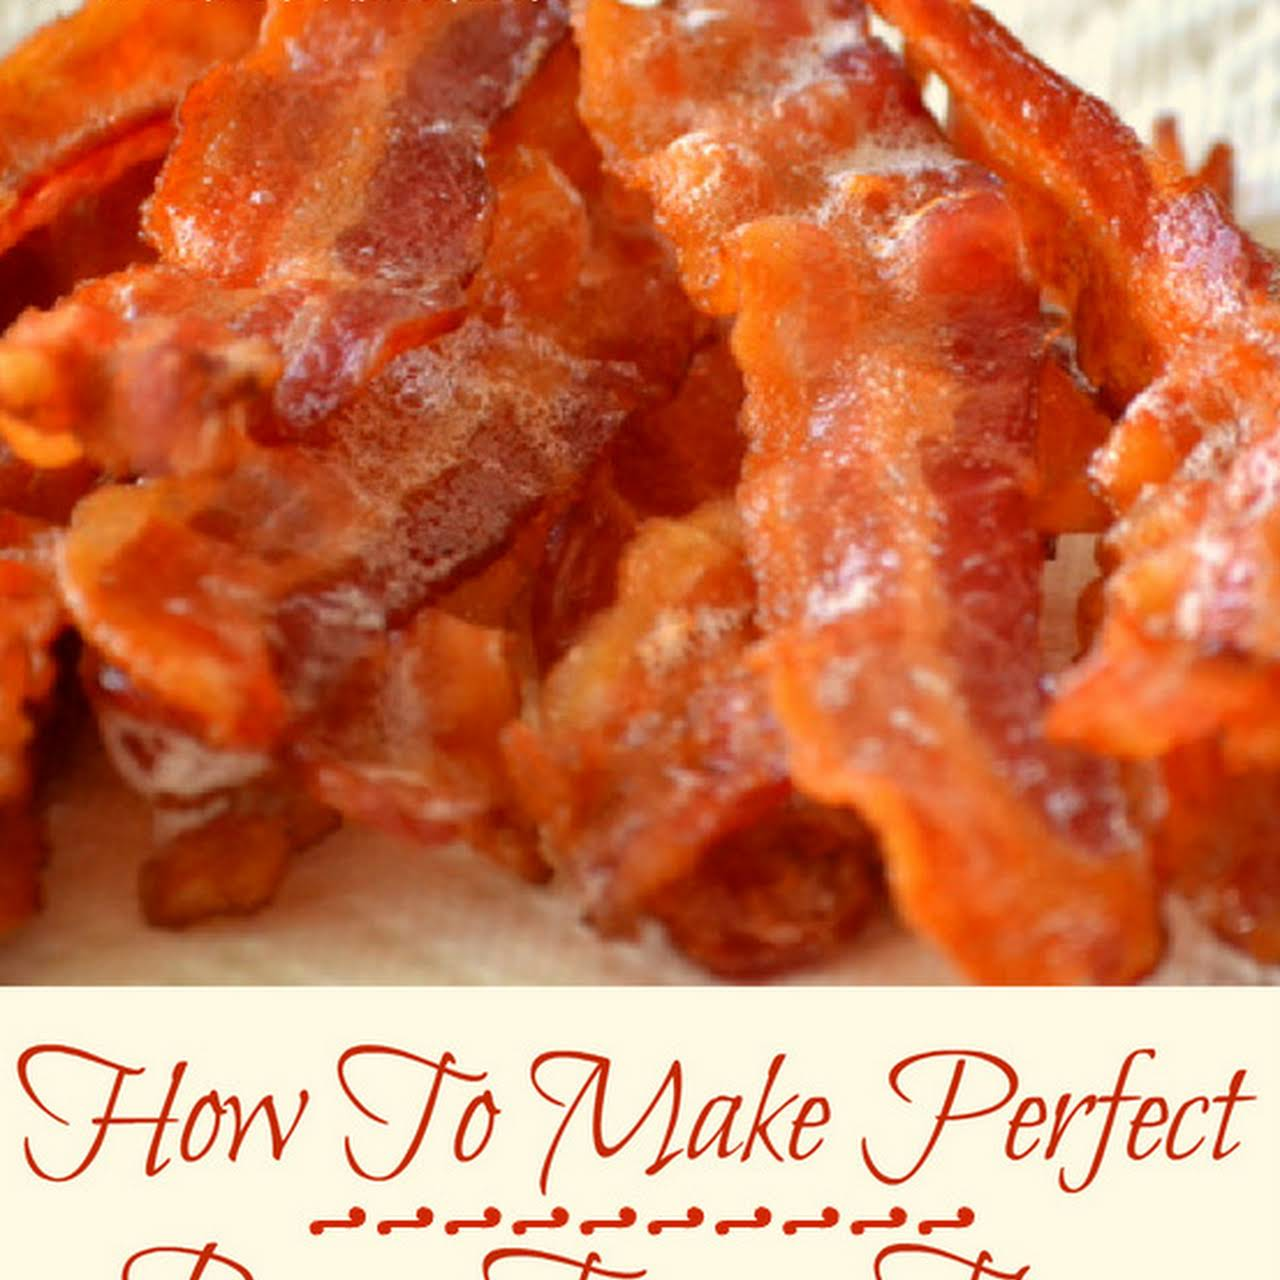 Baking Bacon: A How-To Guide to Making Perfect Bacon Every Time